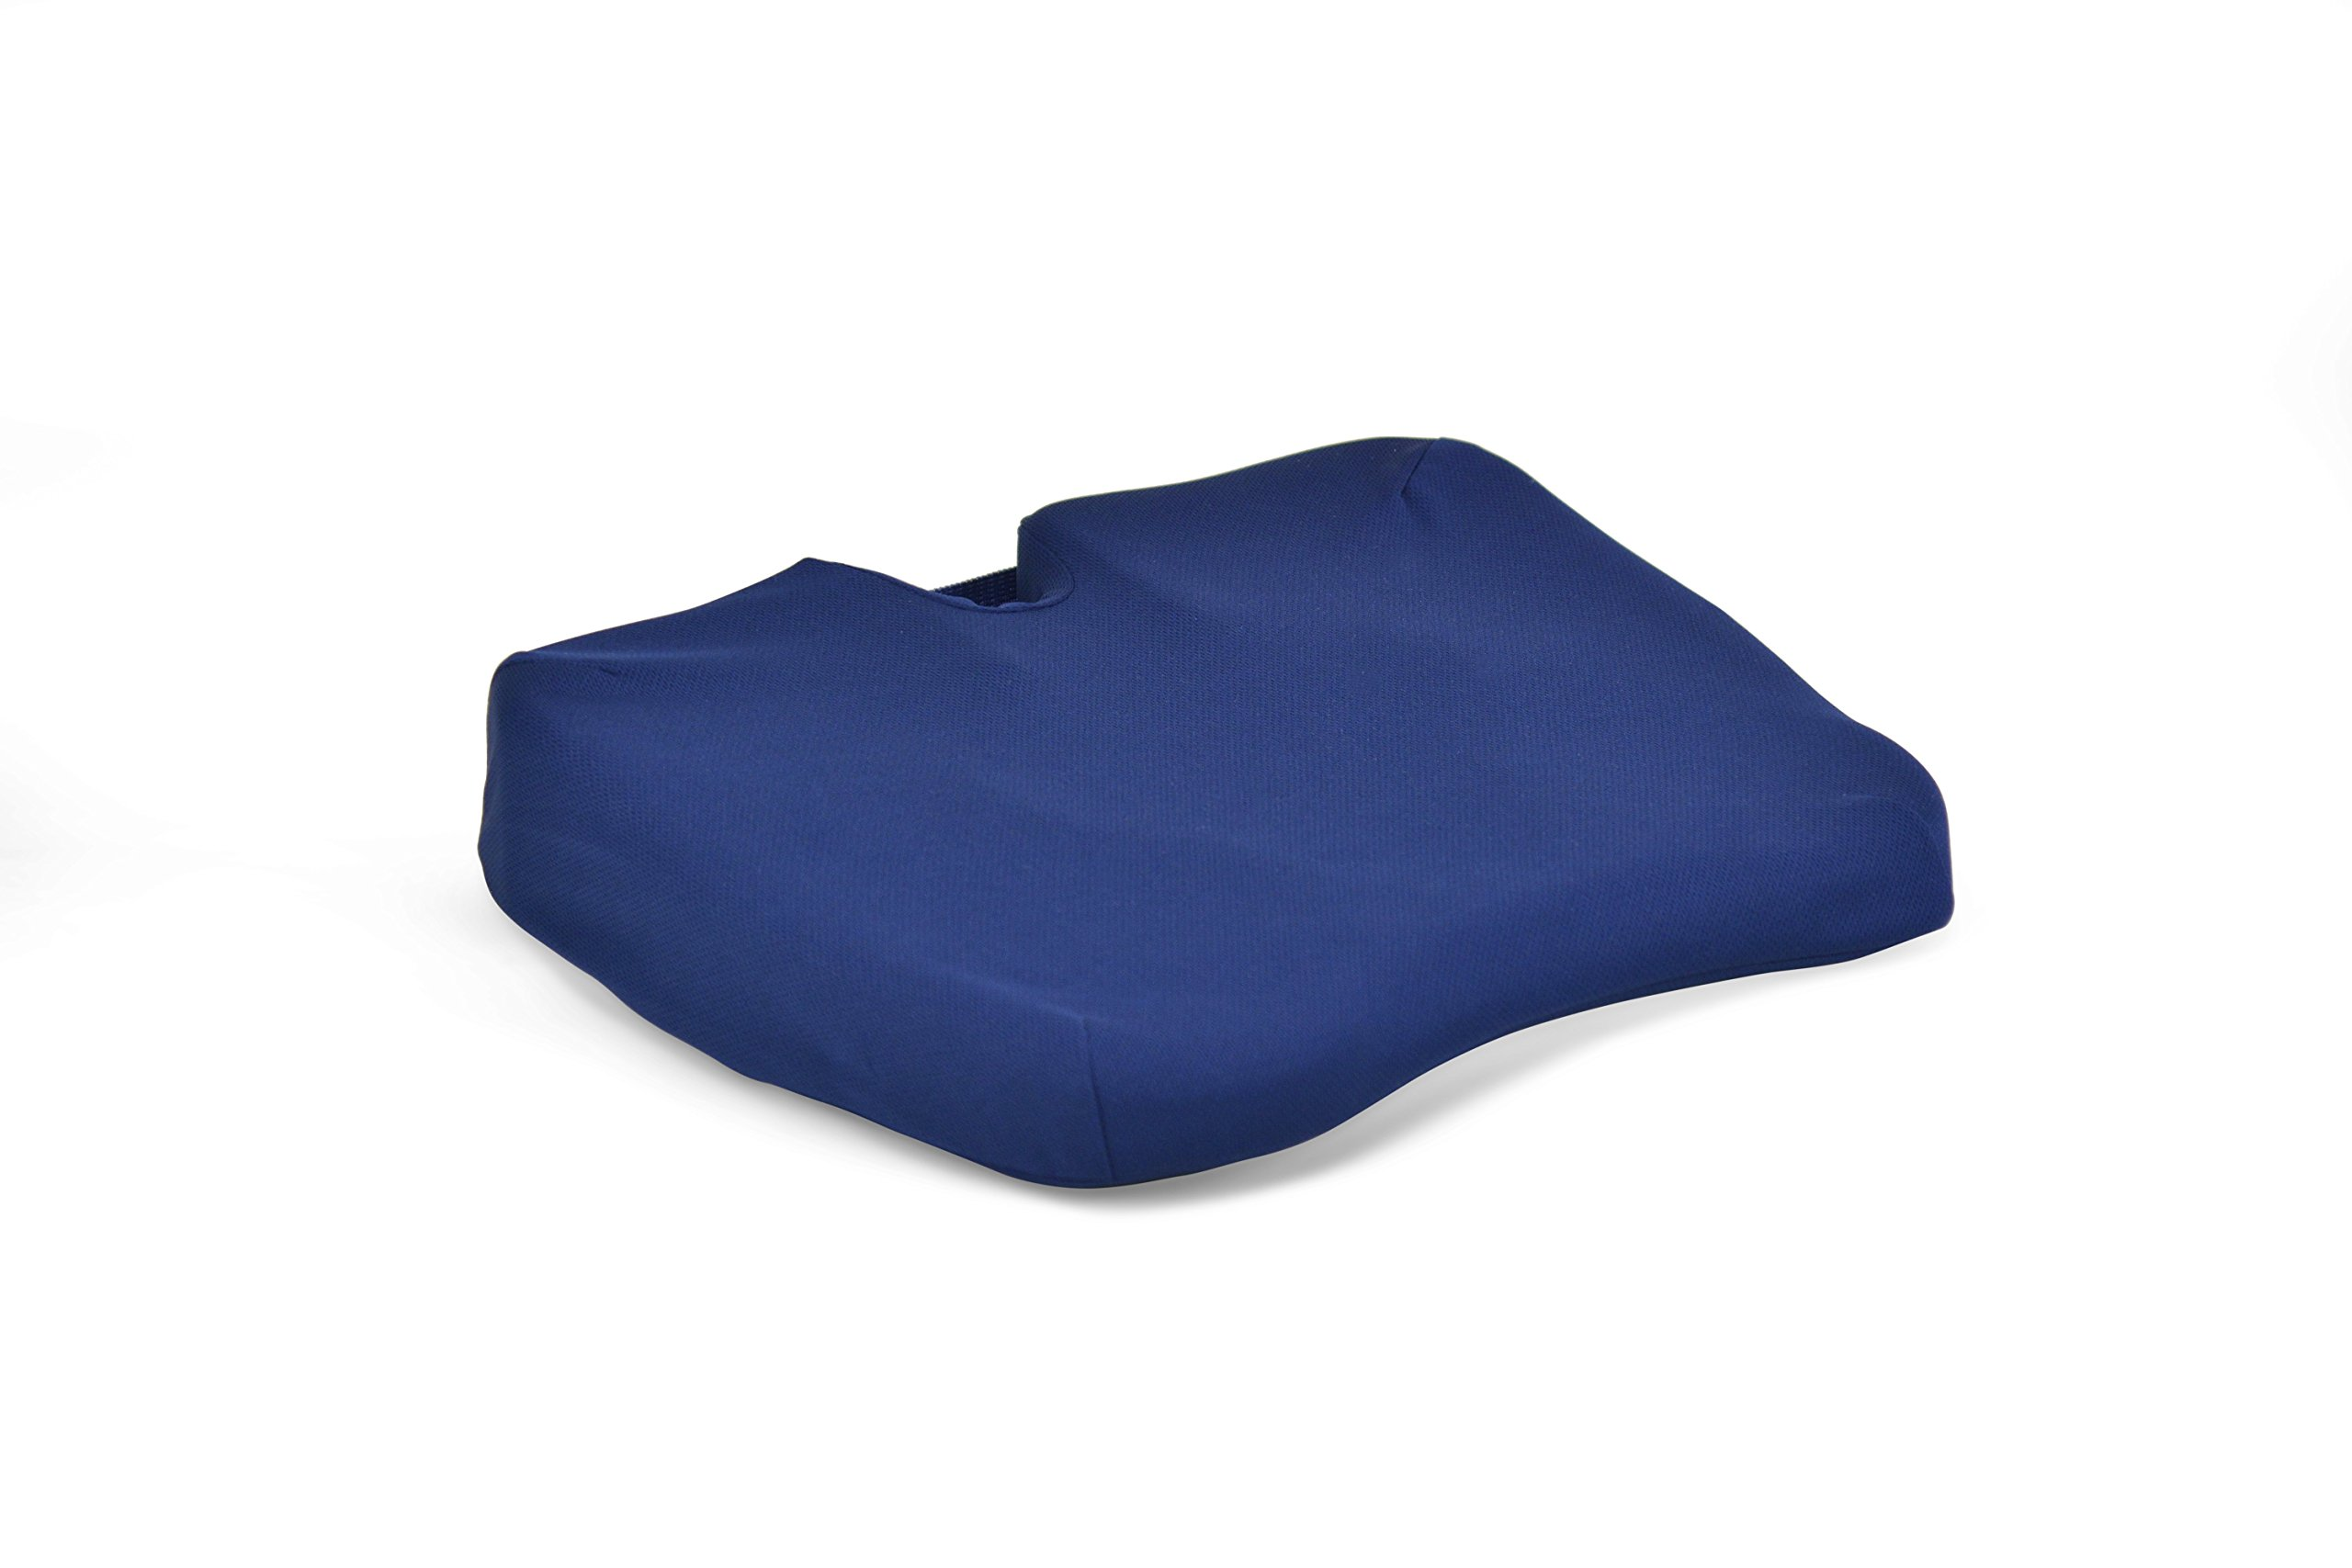 Contour Products Kabooti Coccyx Foam Seat Cushion, Blue